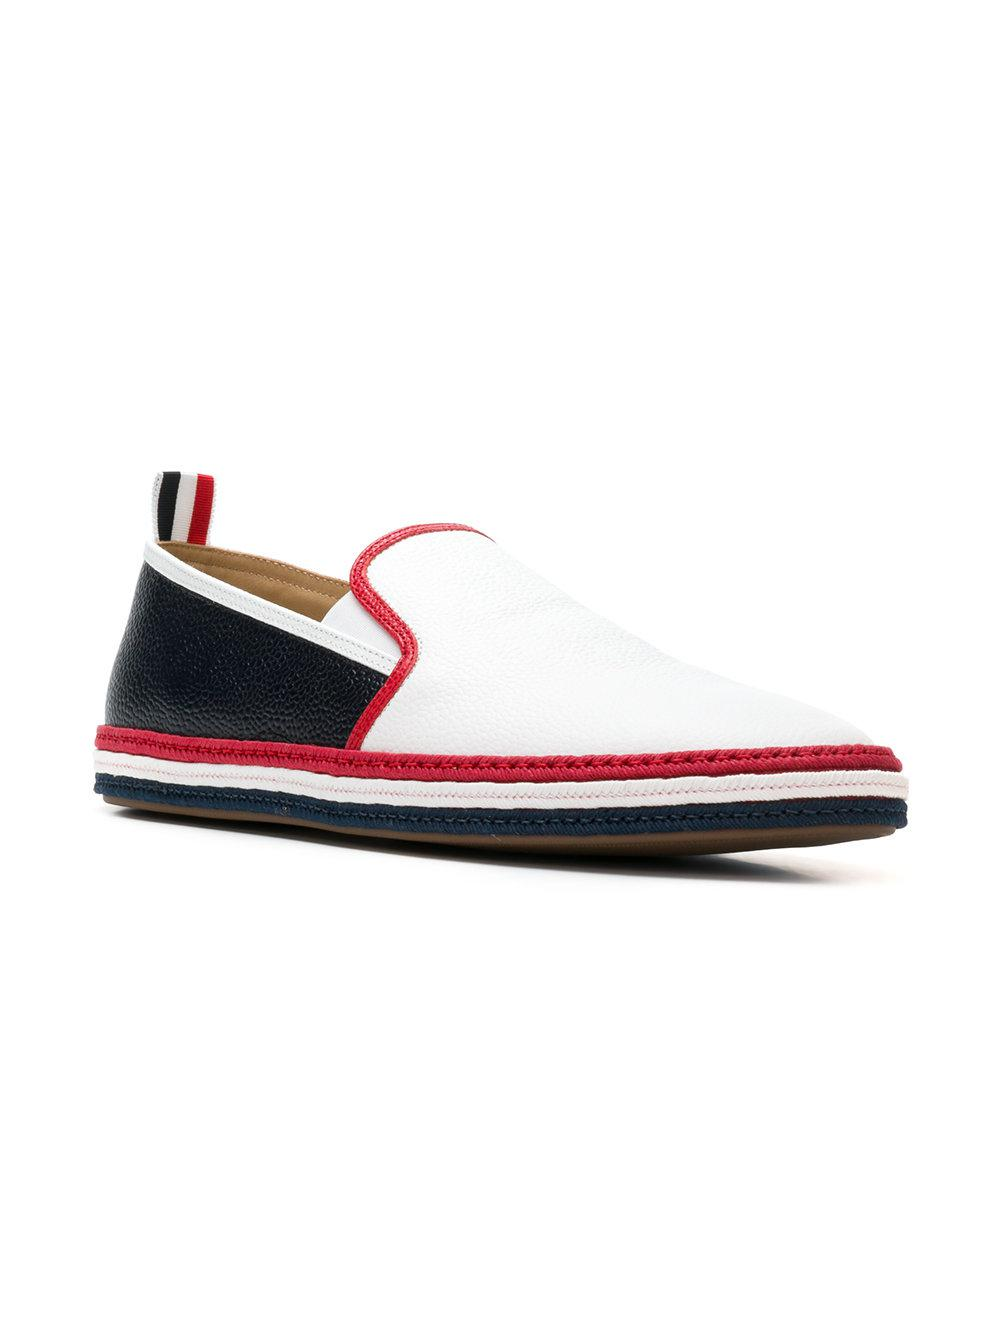 6298995243f Lyst - Thom Browne Striped Rope Leather Espadrille for Men